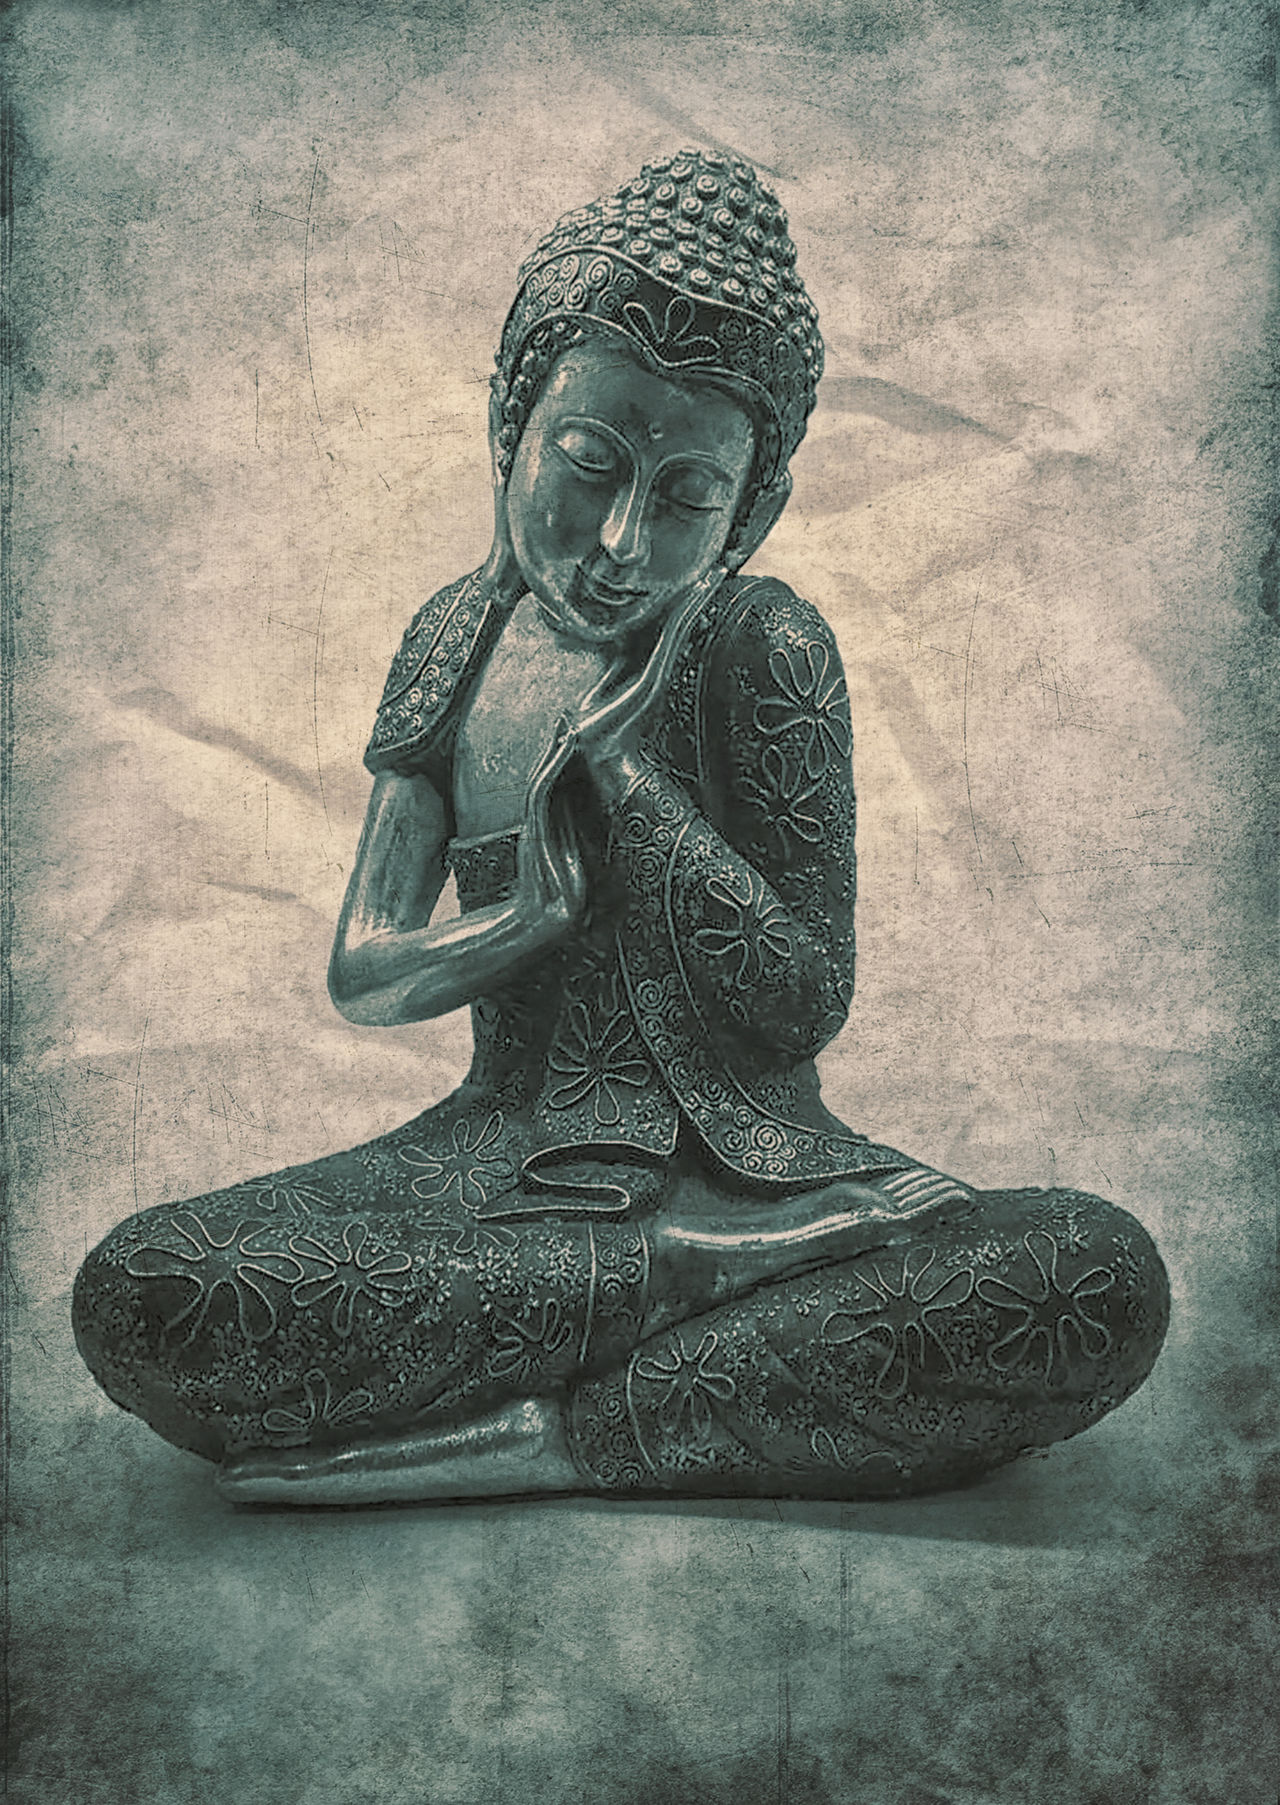 Buddha in a grungy style. Ancient Buddha Buddha Image Compassion Meditation Old Peace Peaceful Siddharta Siddharta Gautama SiddhartaGautama Soft Soft Grunge Soft Light Stillness Vignette